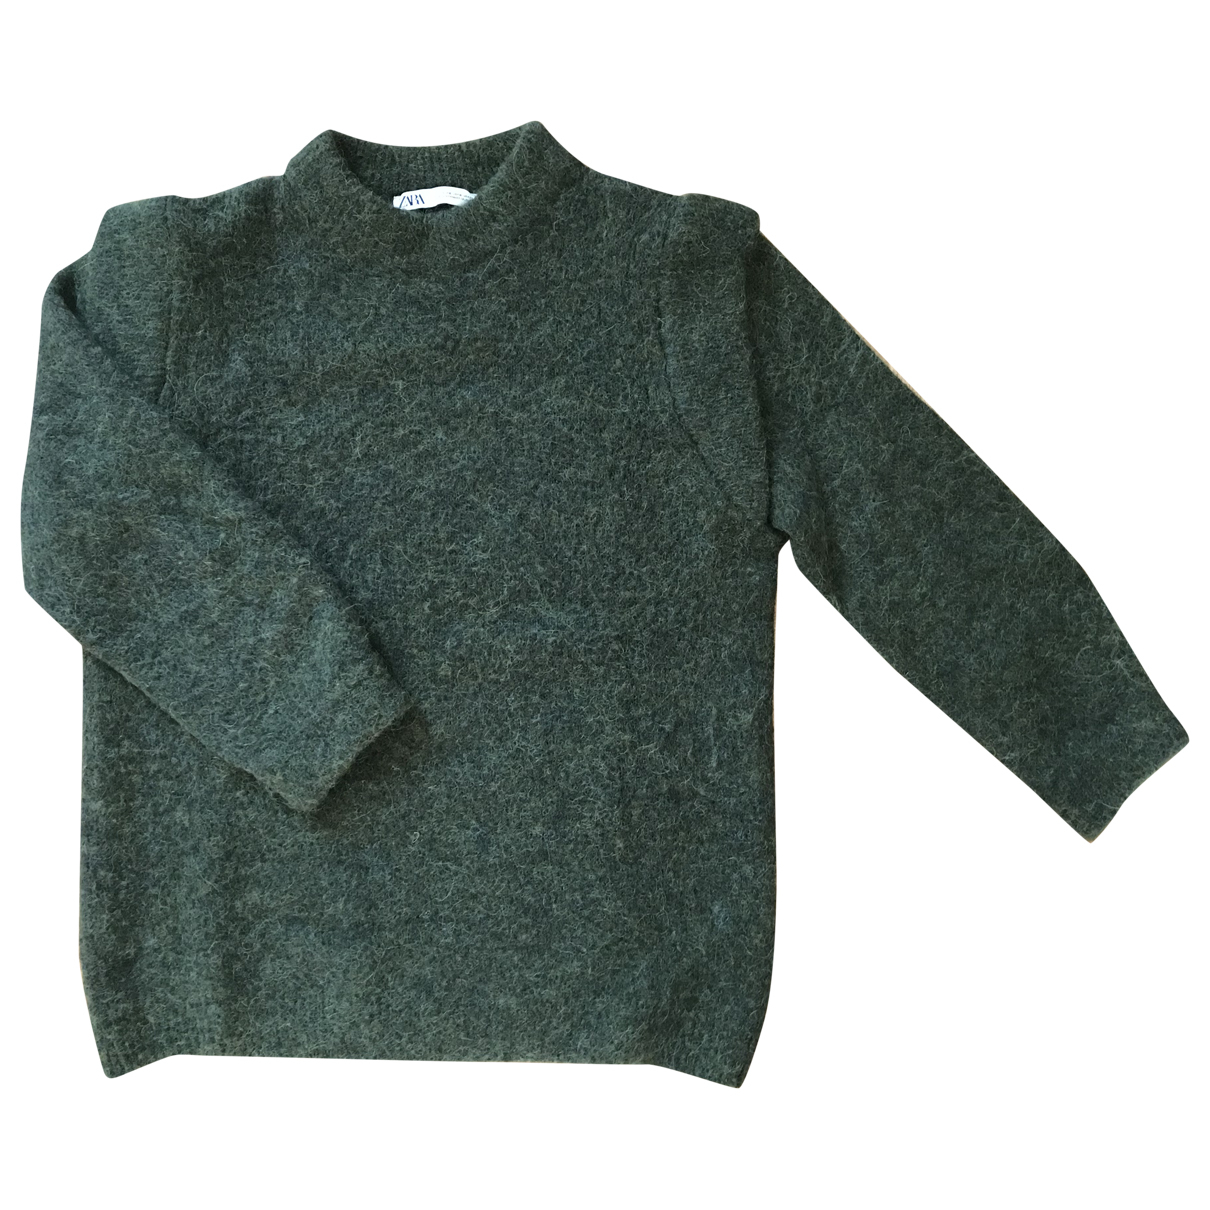 Zara N Green Wool Knitwear for Women S International